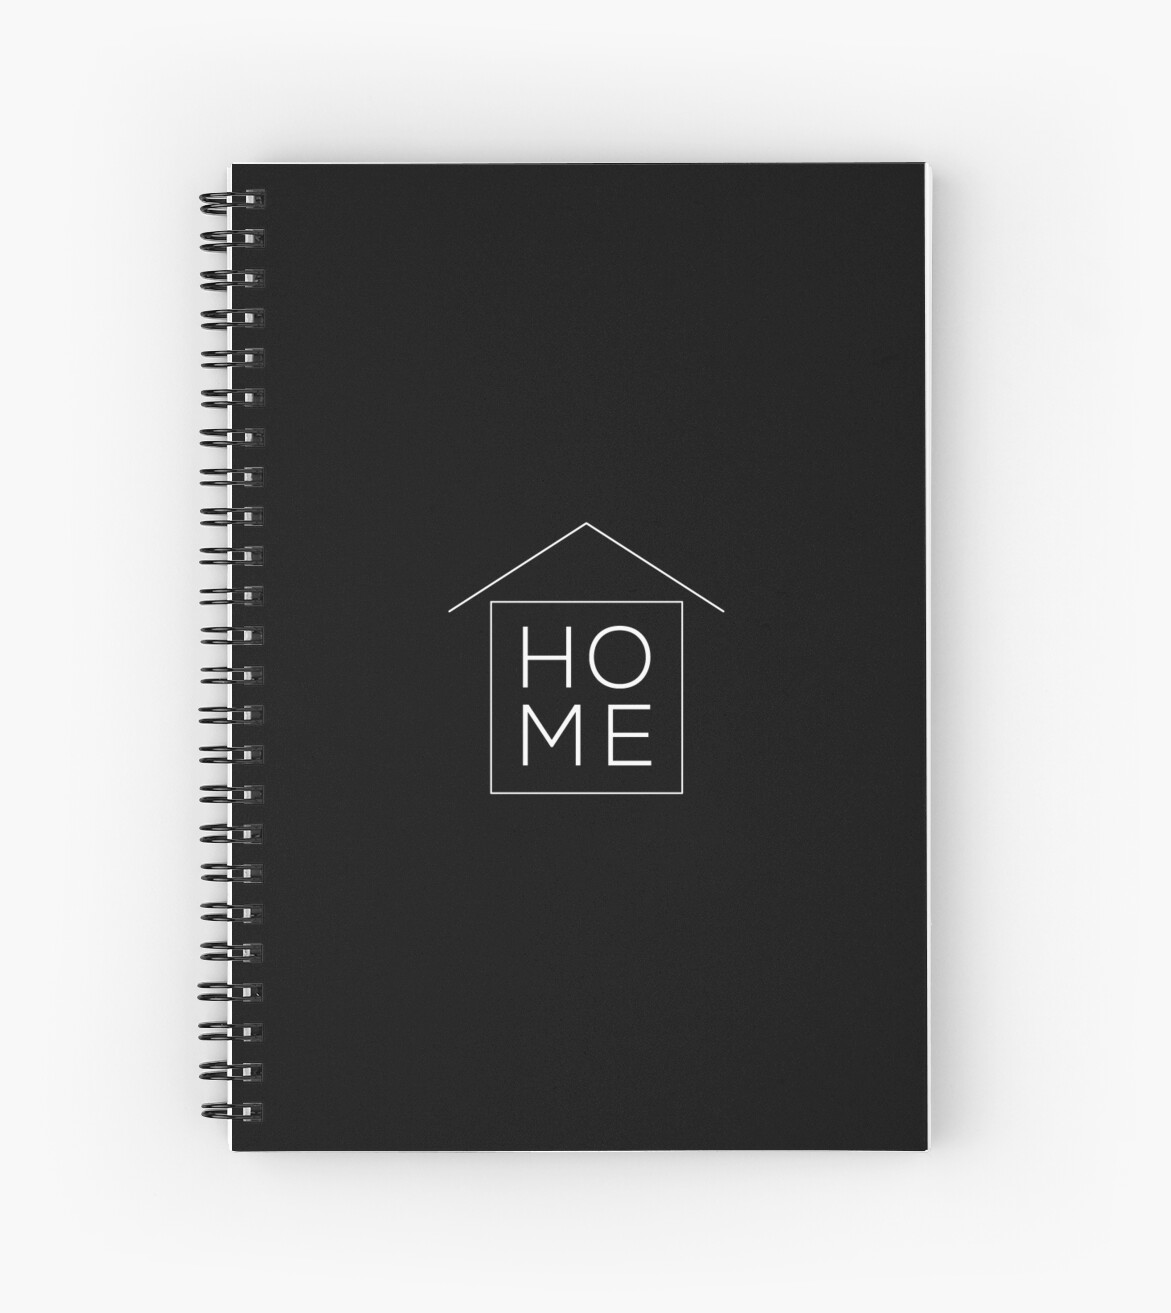 HOME by stuckay